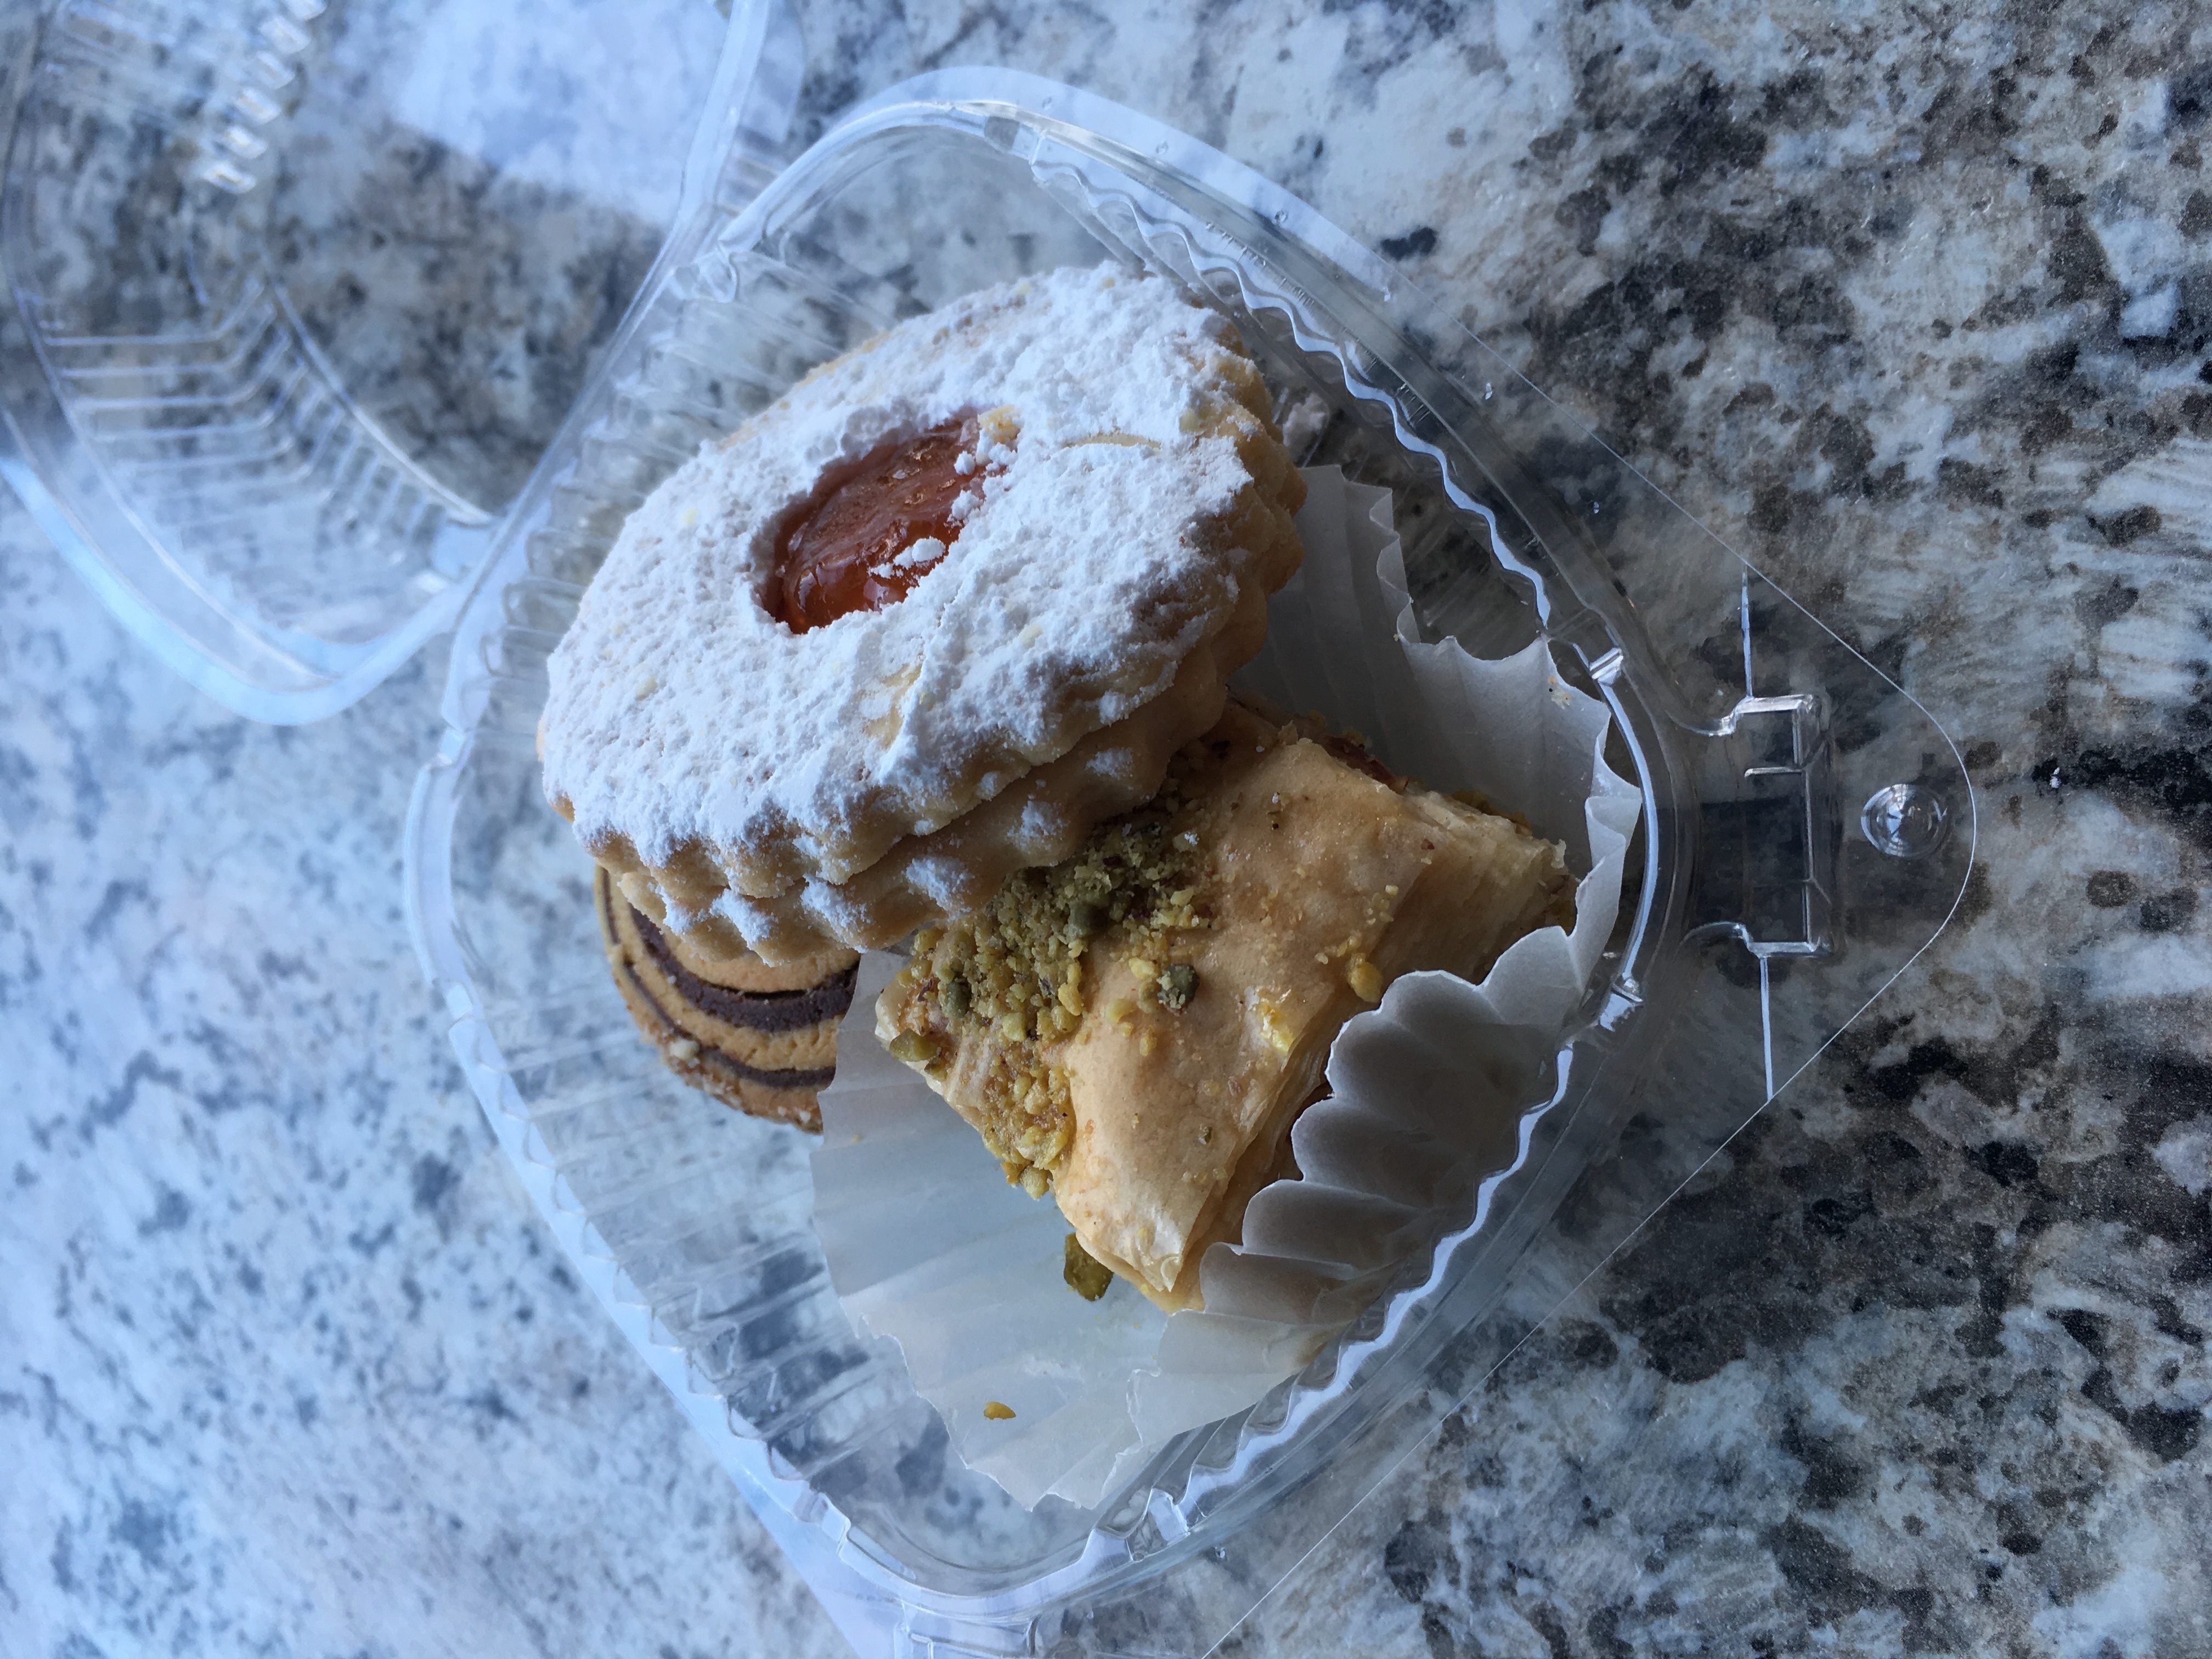 A selection of sweets from the La Jolie Bleue in Georgetown